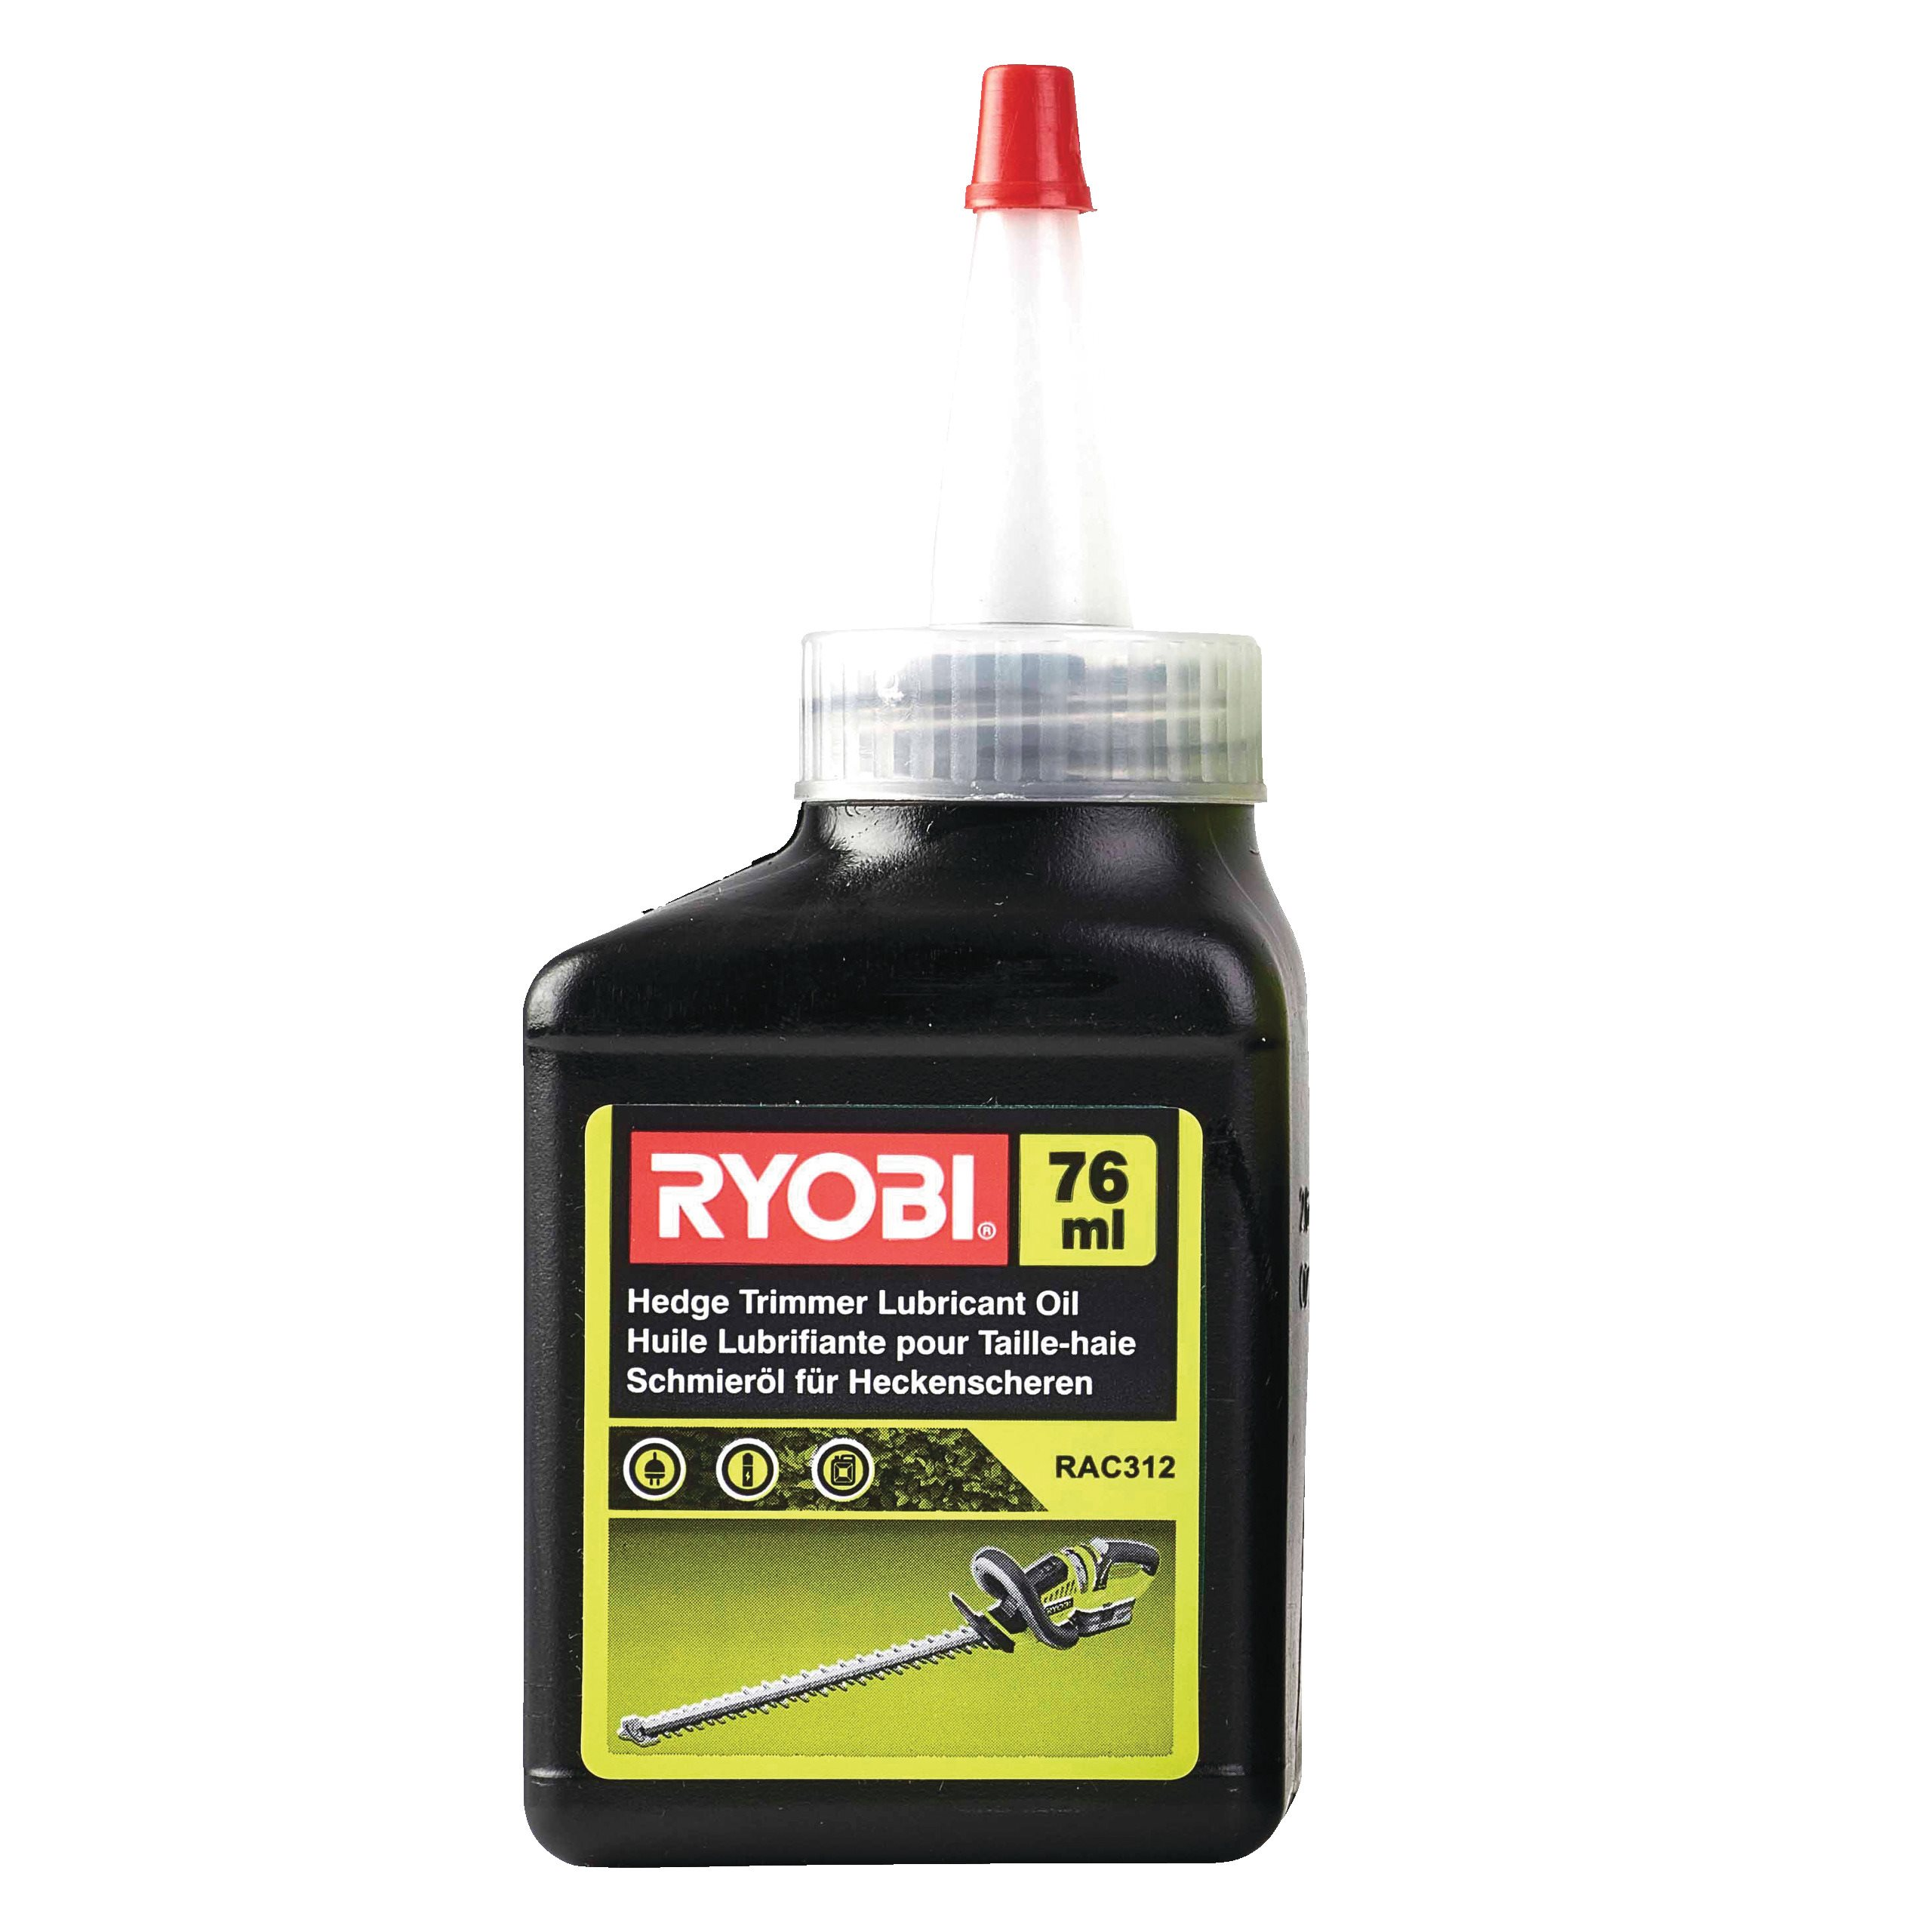 Hedge Trimmer Lubrication Oil